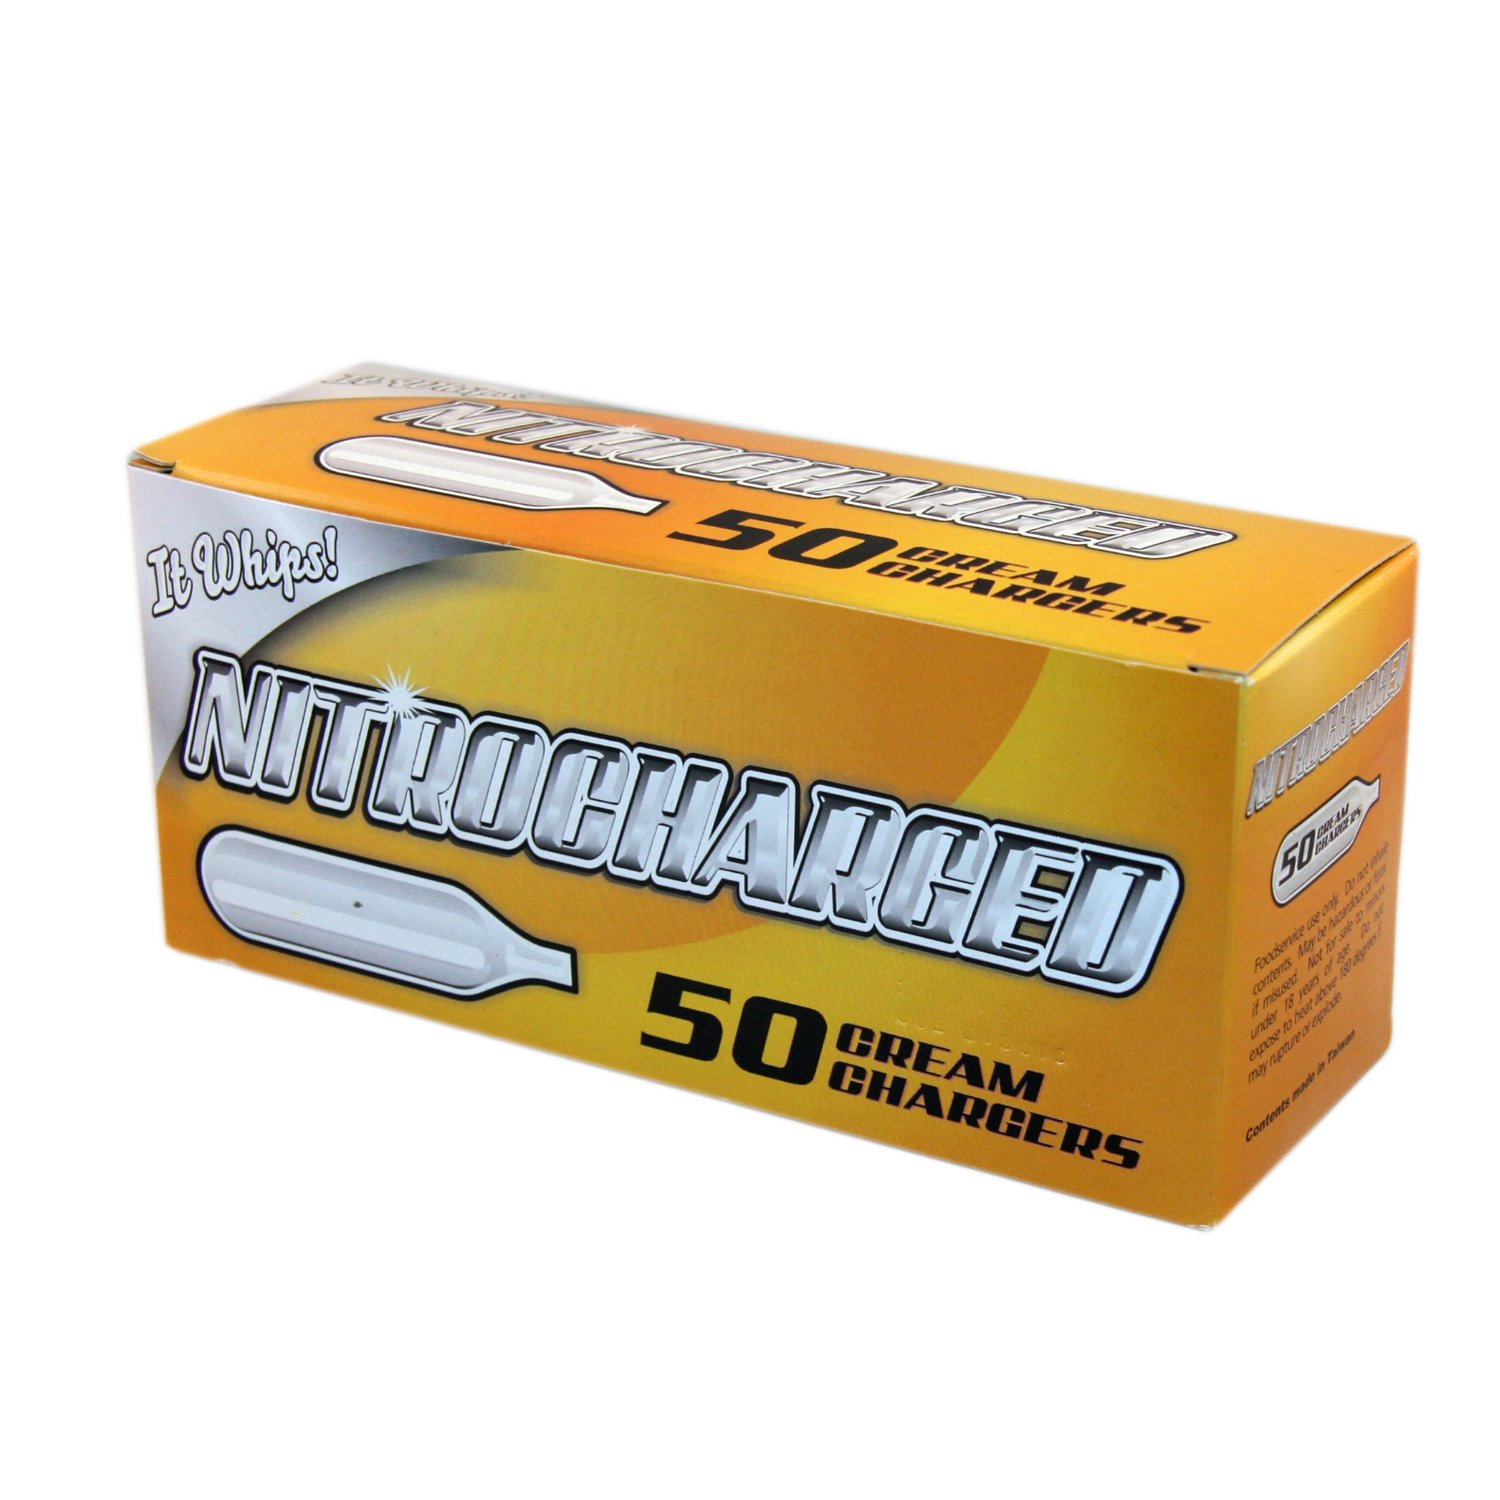 BestWhip Nitrocharged Nitro50 Whipped Cream Chargers, 800 Count